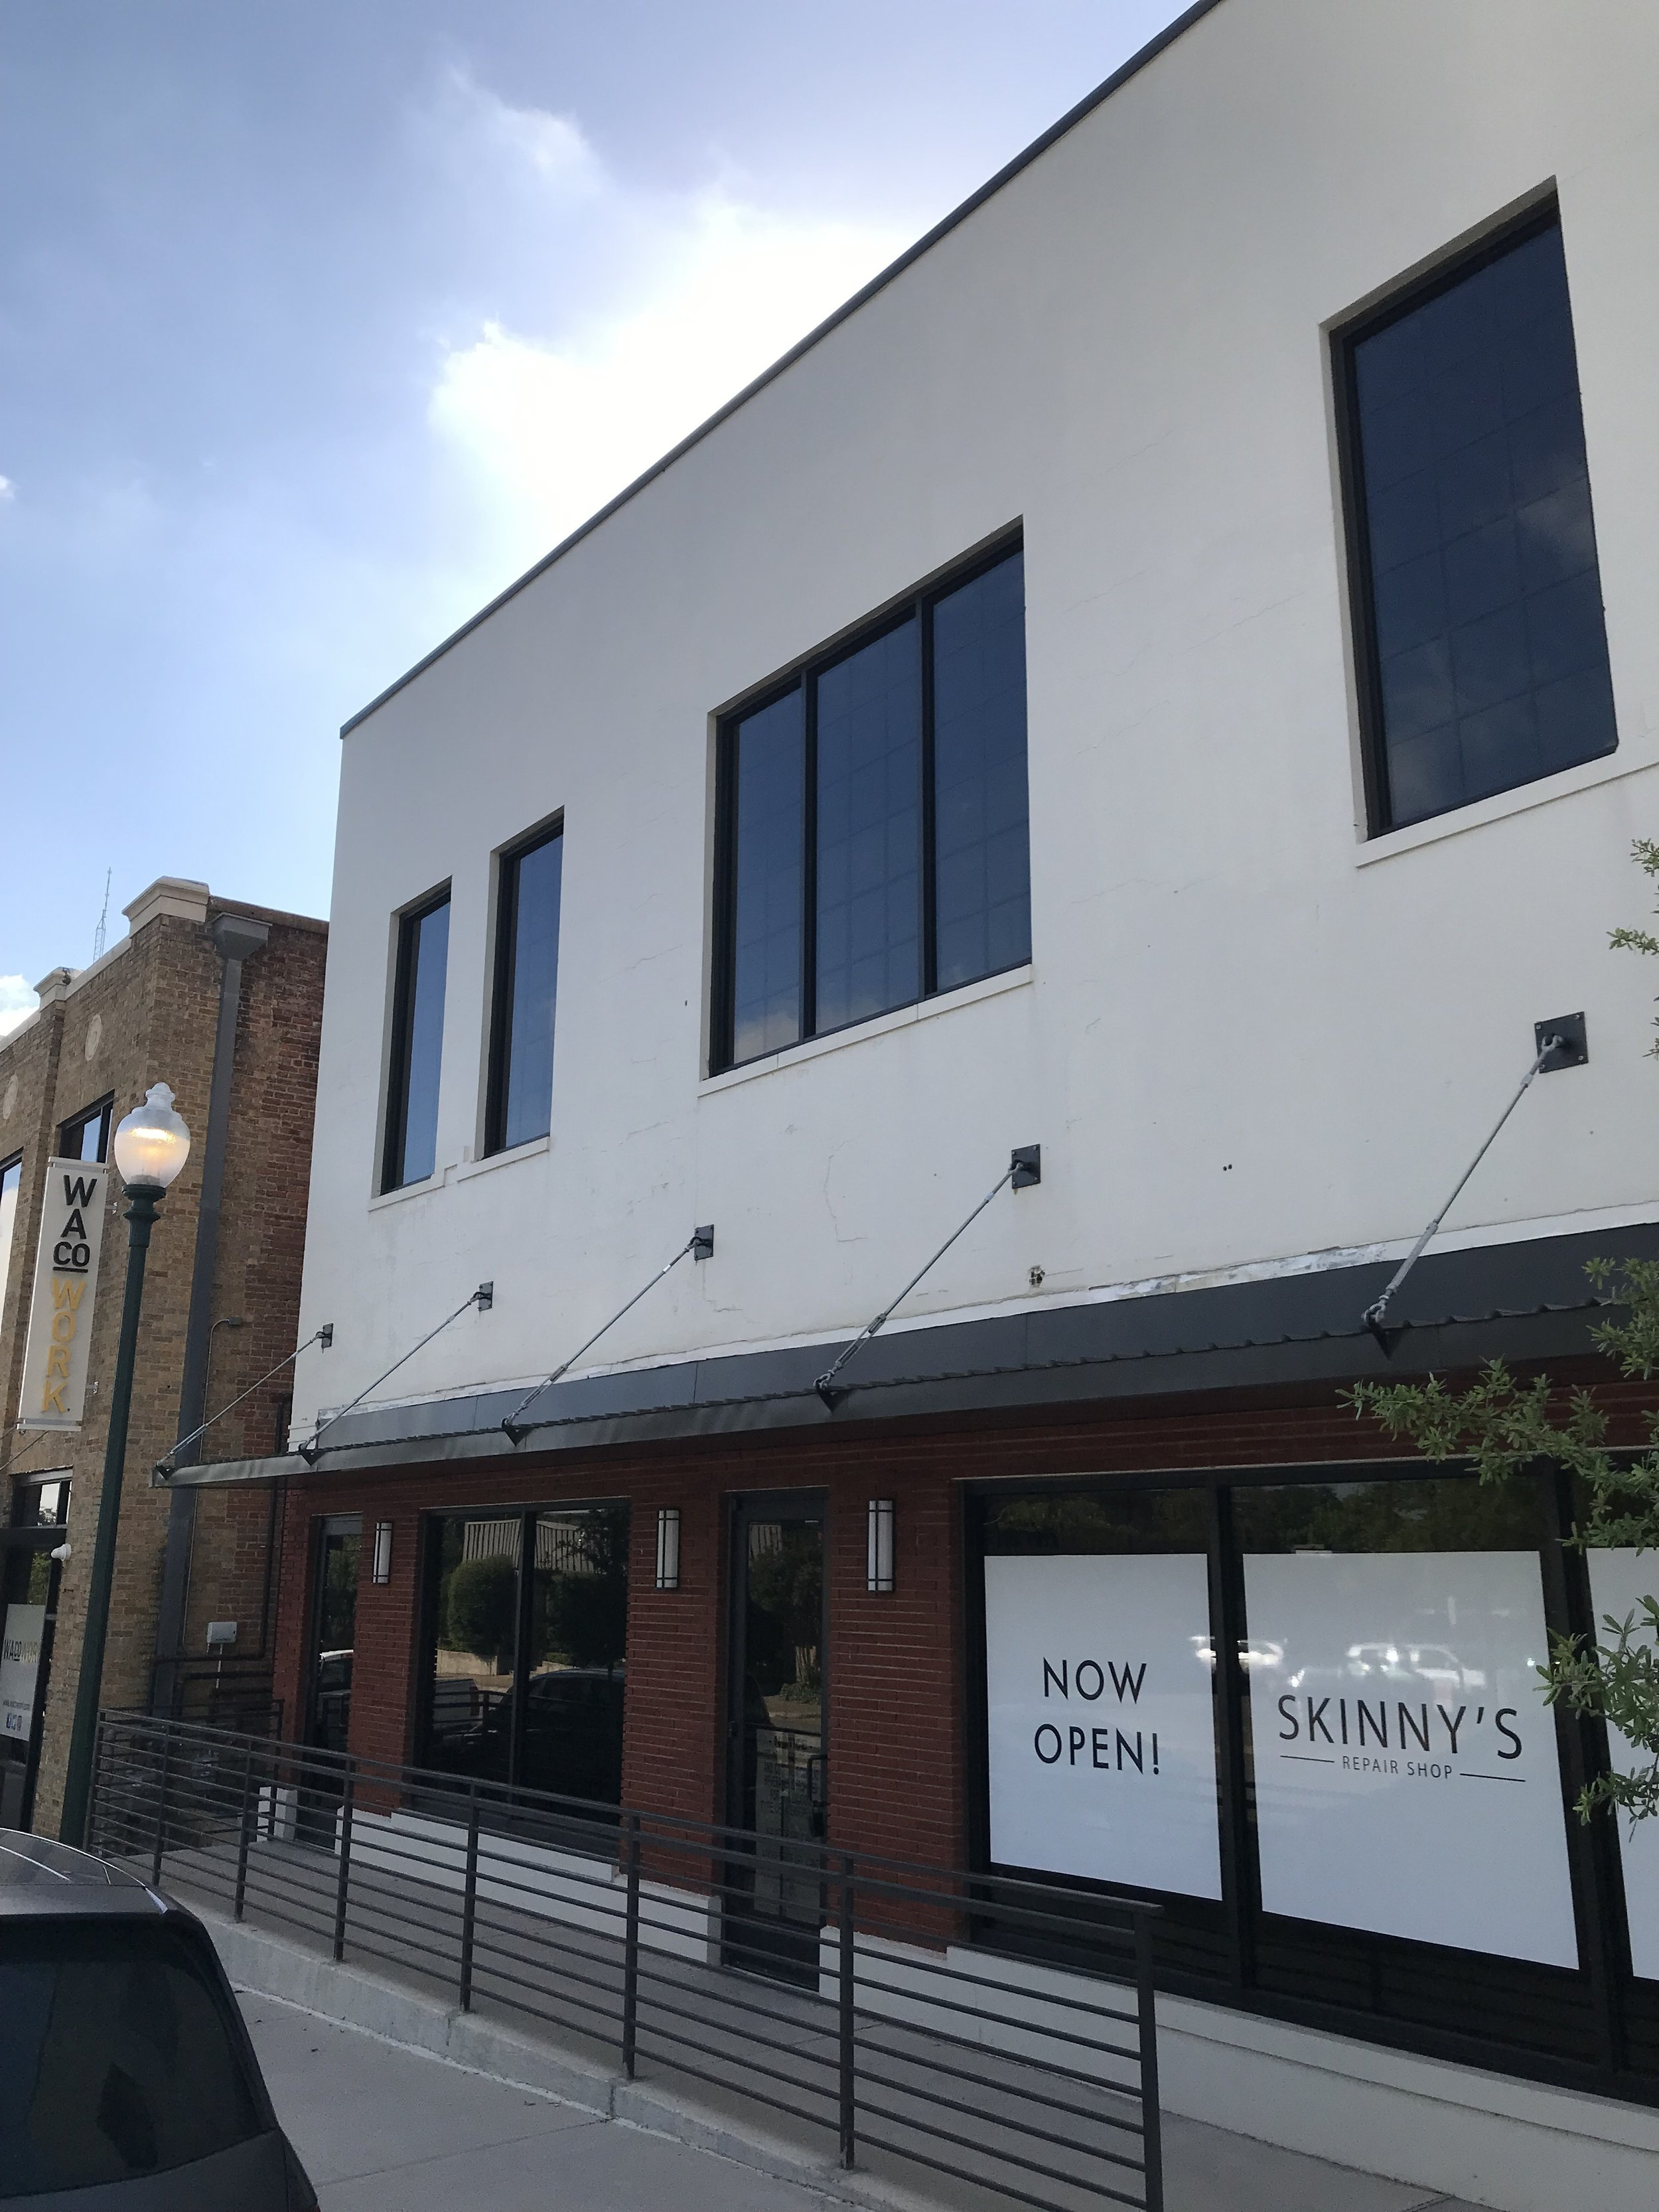 Skinny's Repair Shop at 618 Columbus will soon be joined on the ground floor by William Hoyt Bagel and Beer. The second floor remains open as office space.